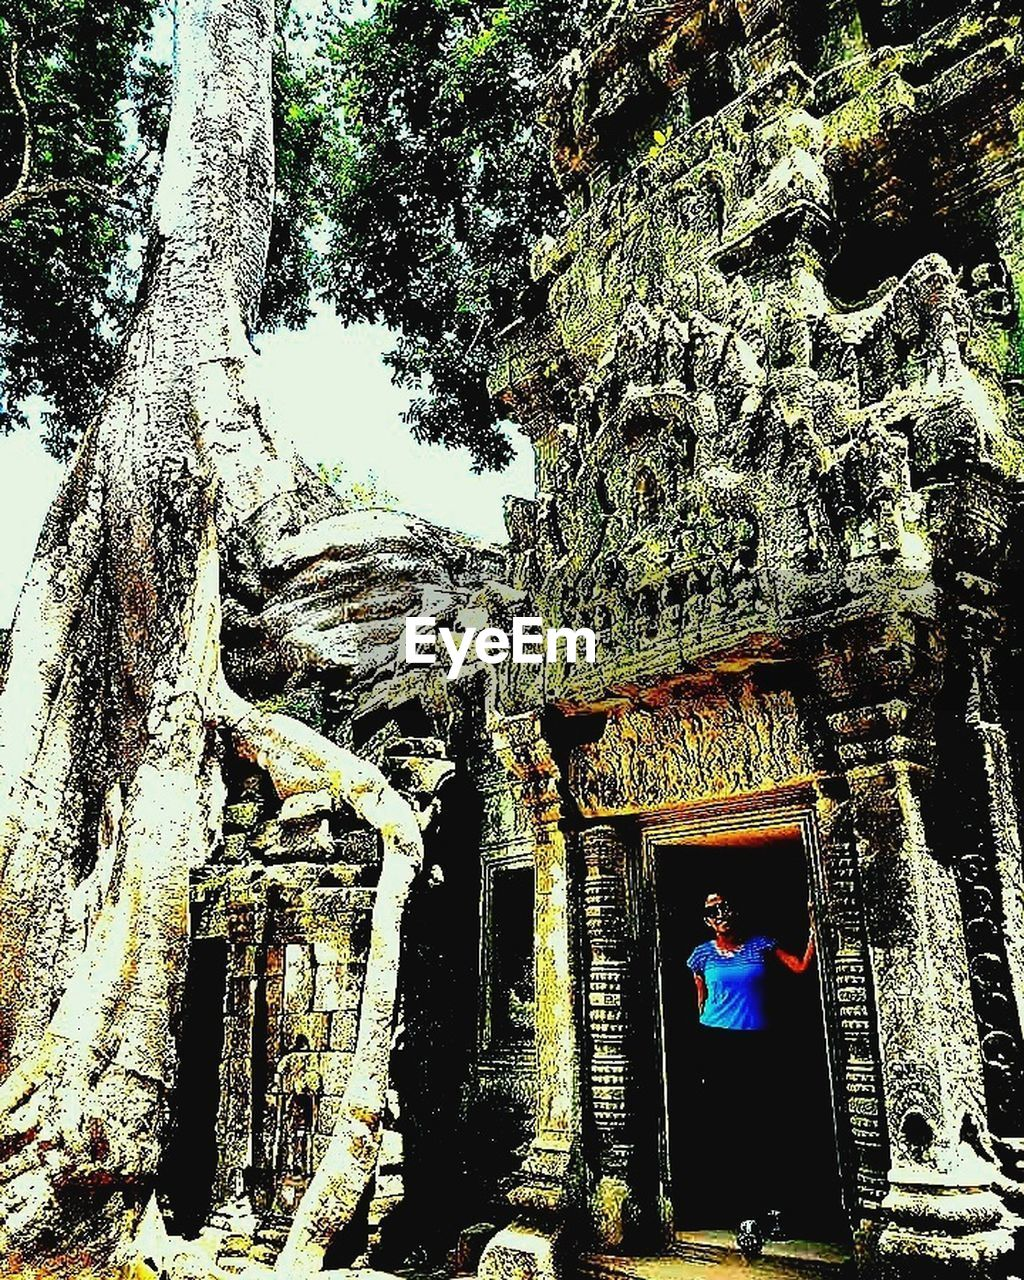 tree, real people, built structure, architecture, spirituality, one person, building exterior, men, day, religion, place of worship, rear view, ancient, outdoors, tree trunk, growth, nature, lifestyles, standing, full length, ancient civilization, beauty in nature, people